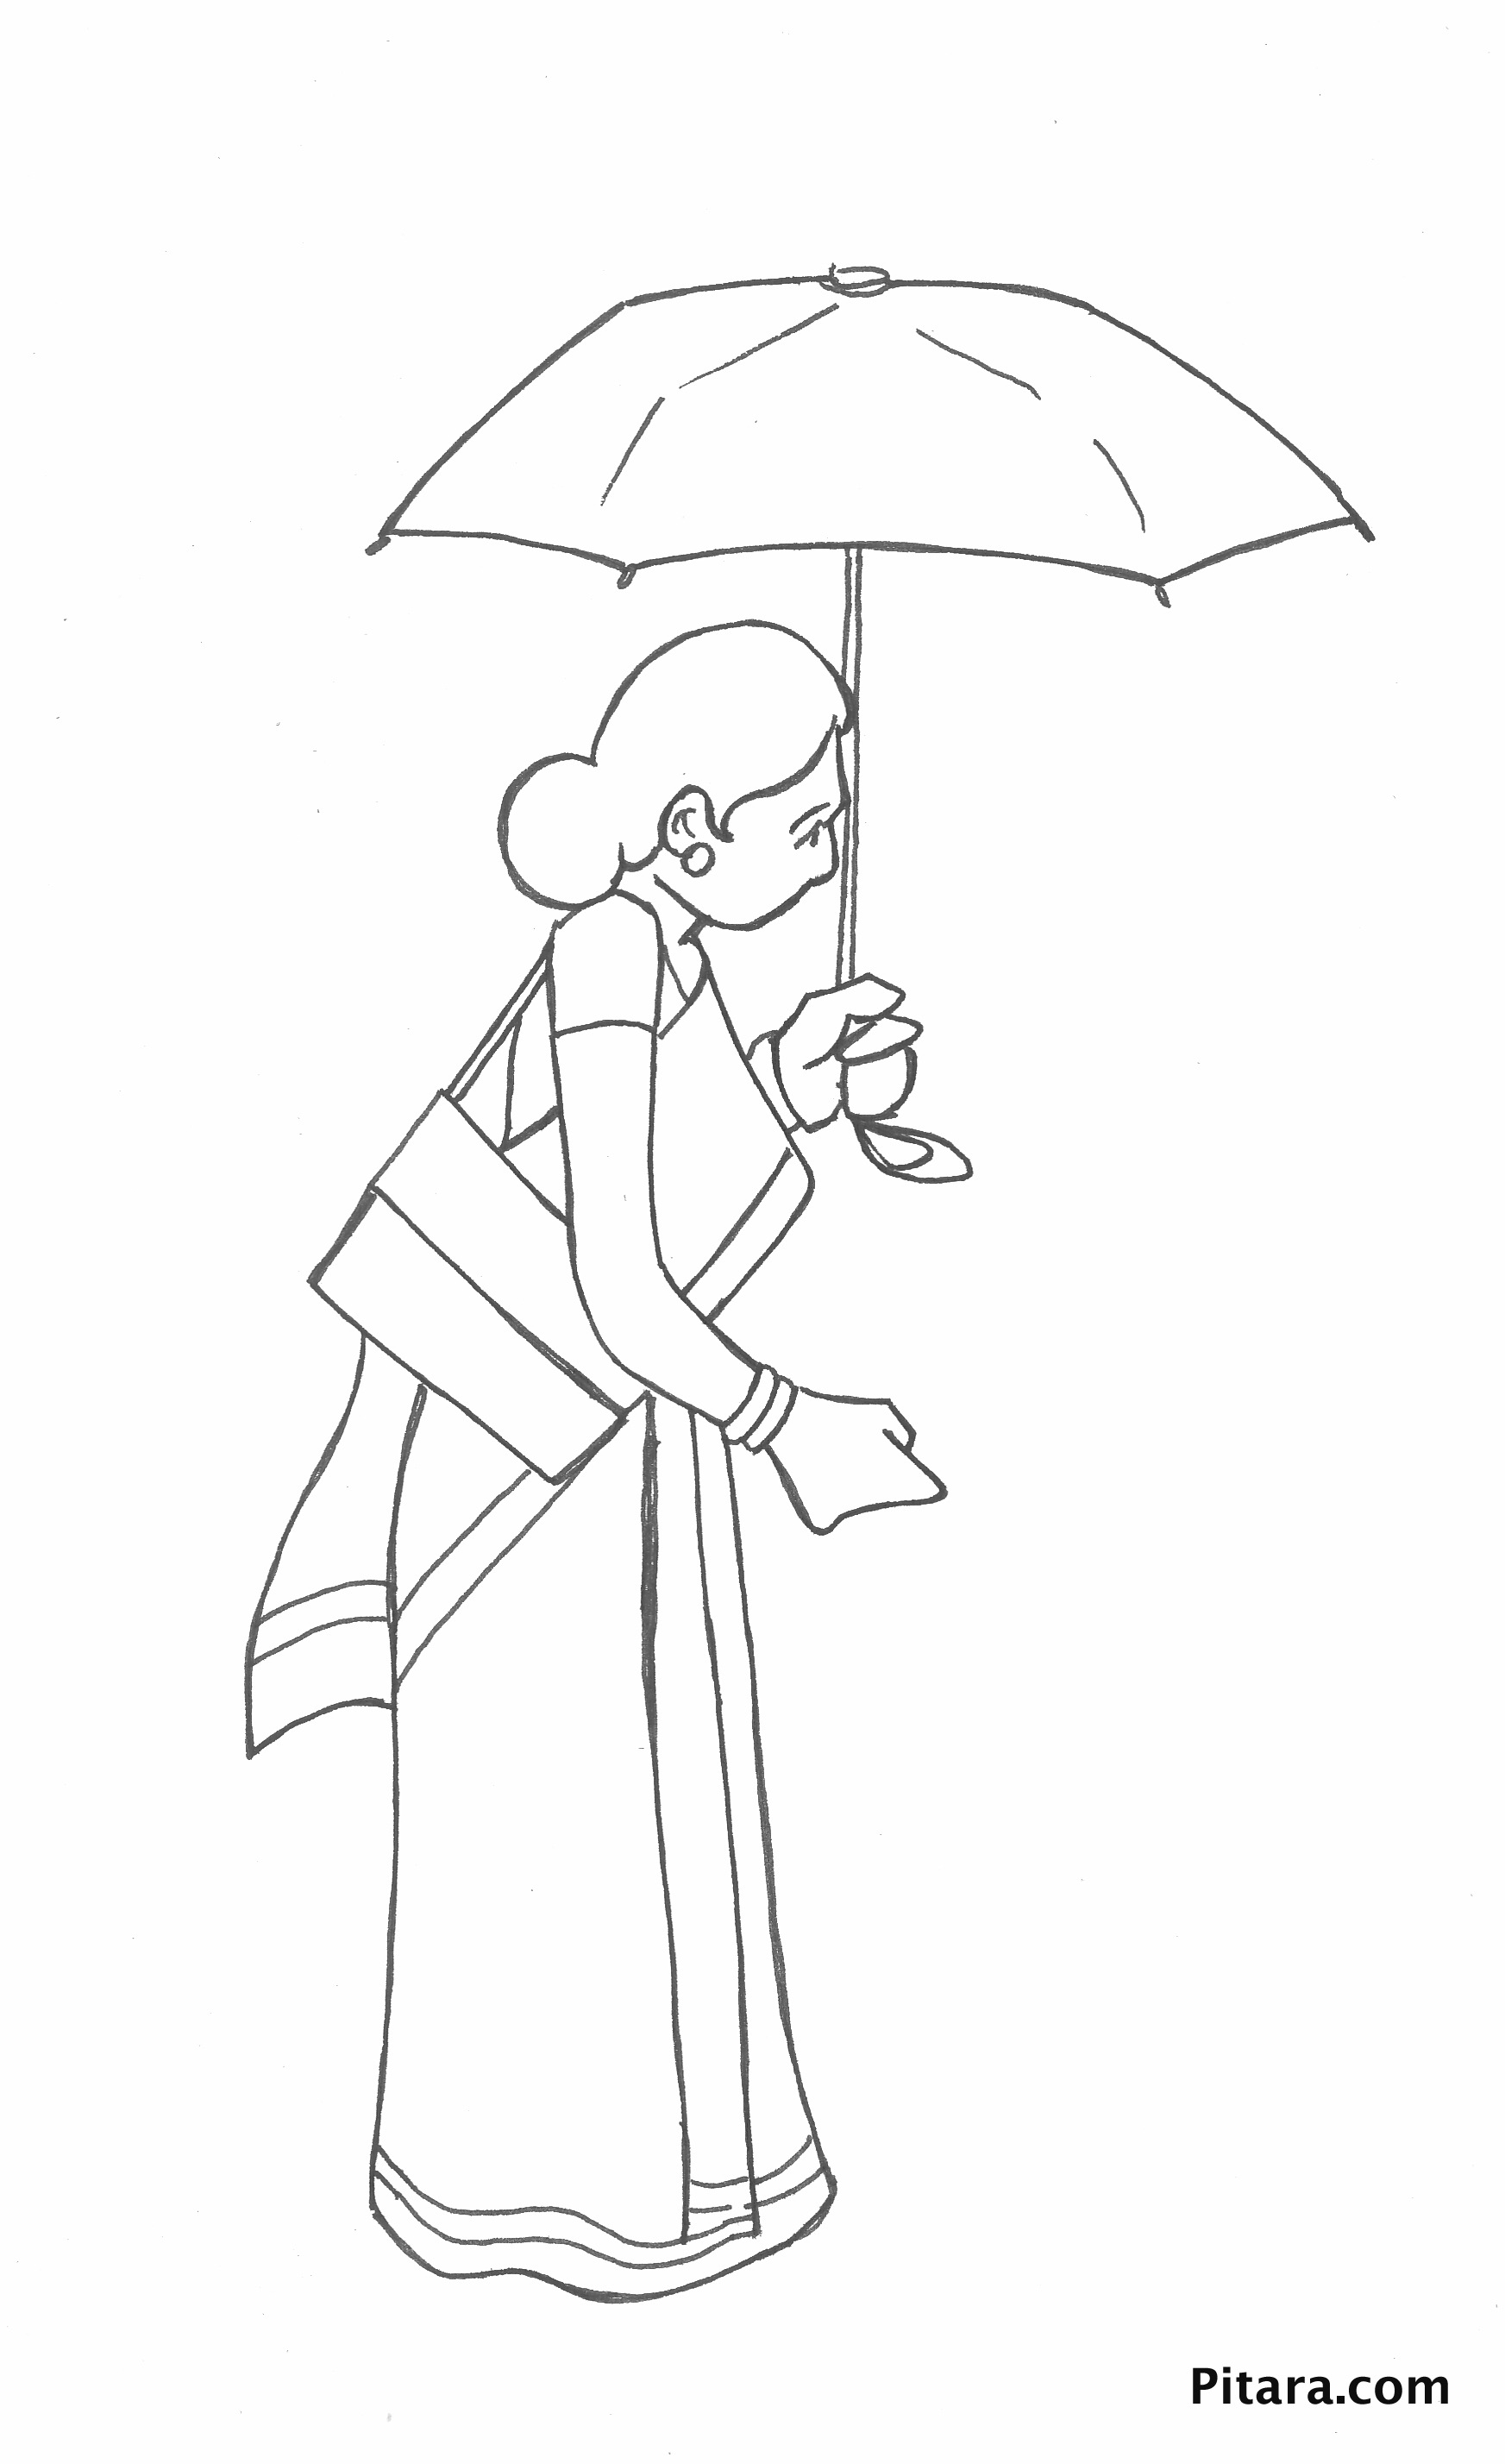 Woman with umbrella – Coloring page | Pitara Kids Network